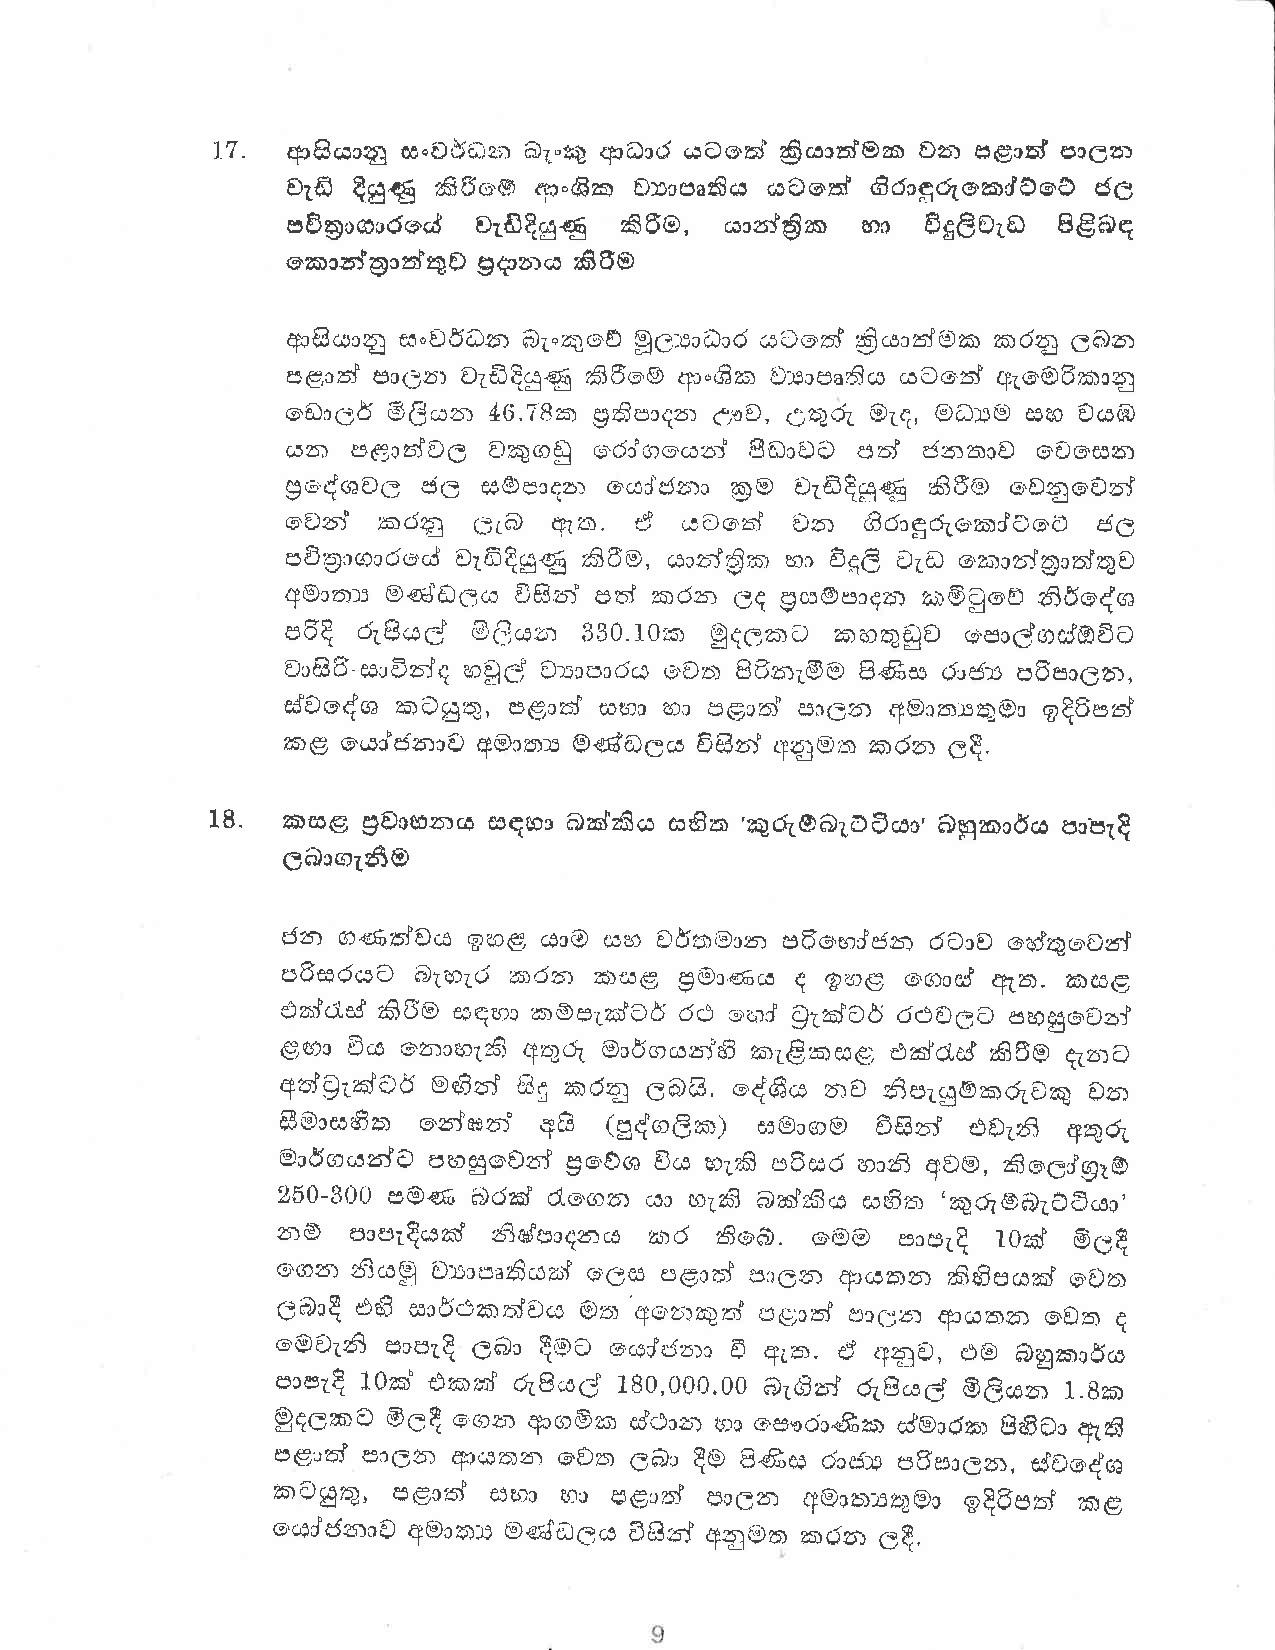 Cabinet Decision on 27.02.2020 page 009